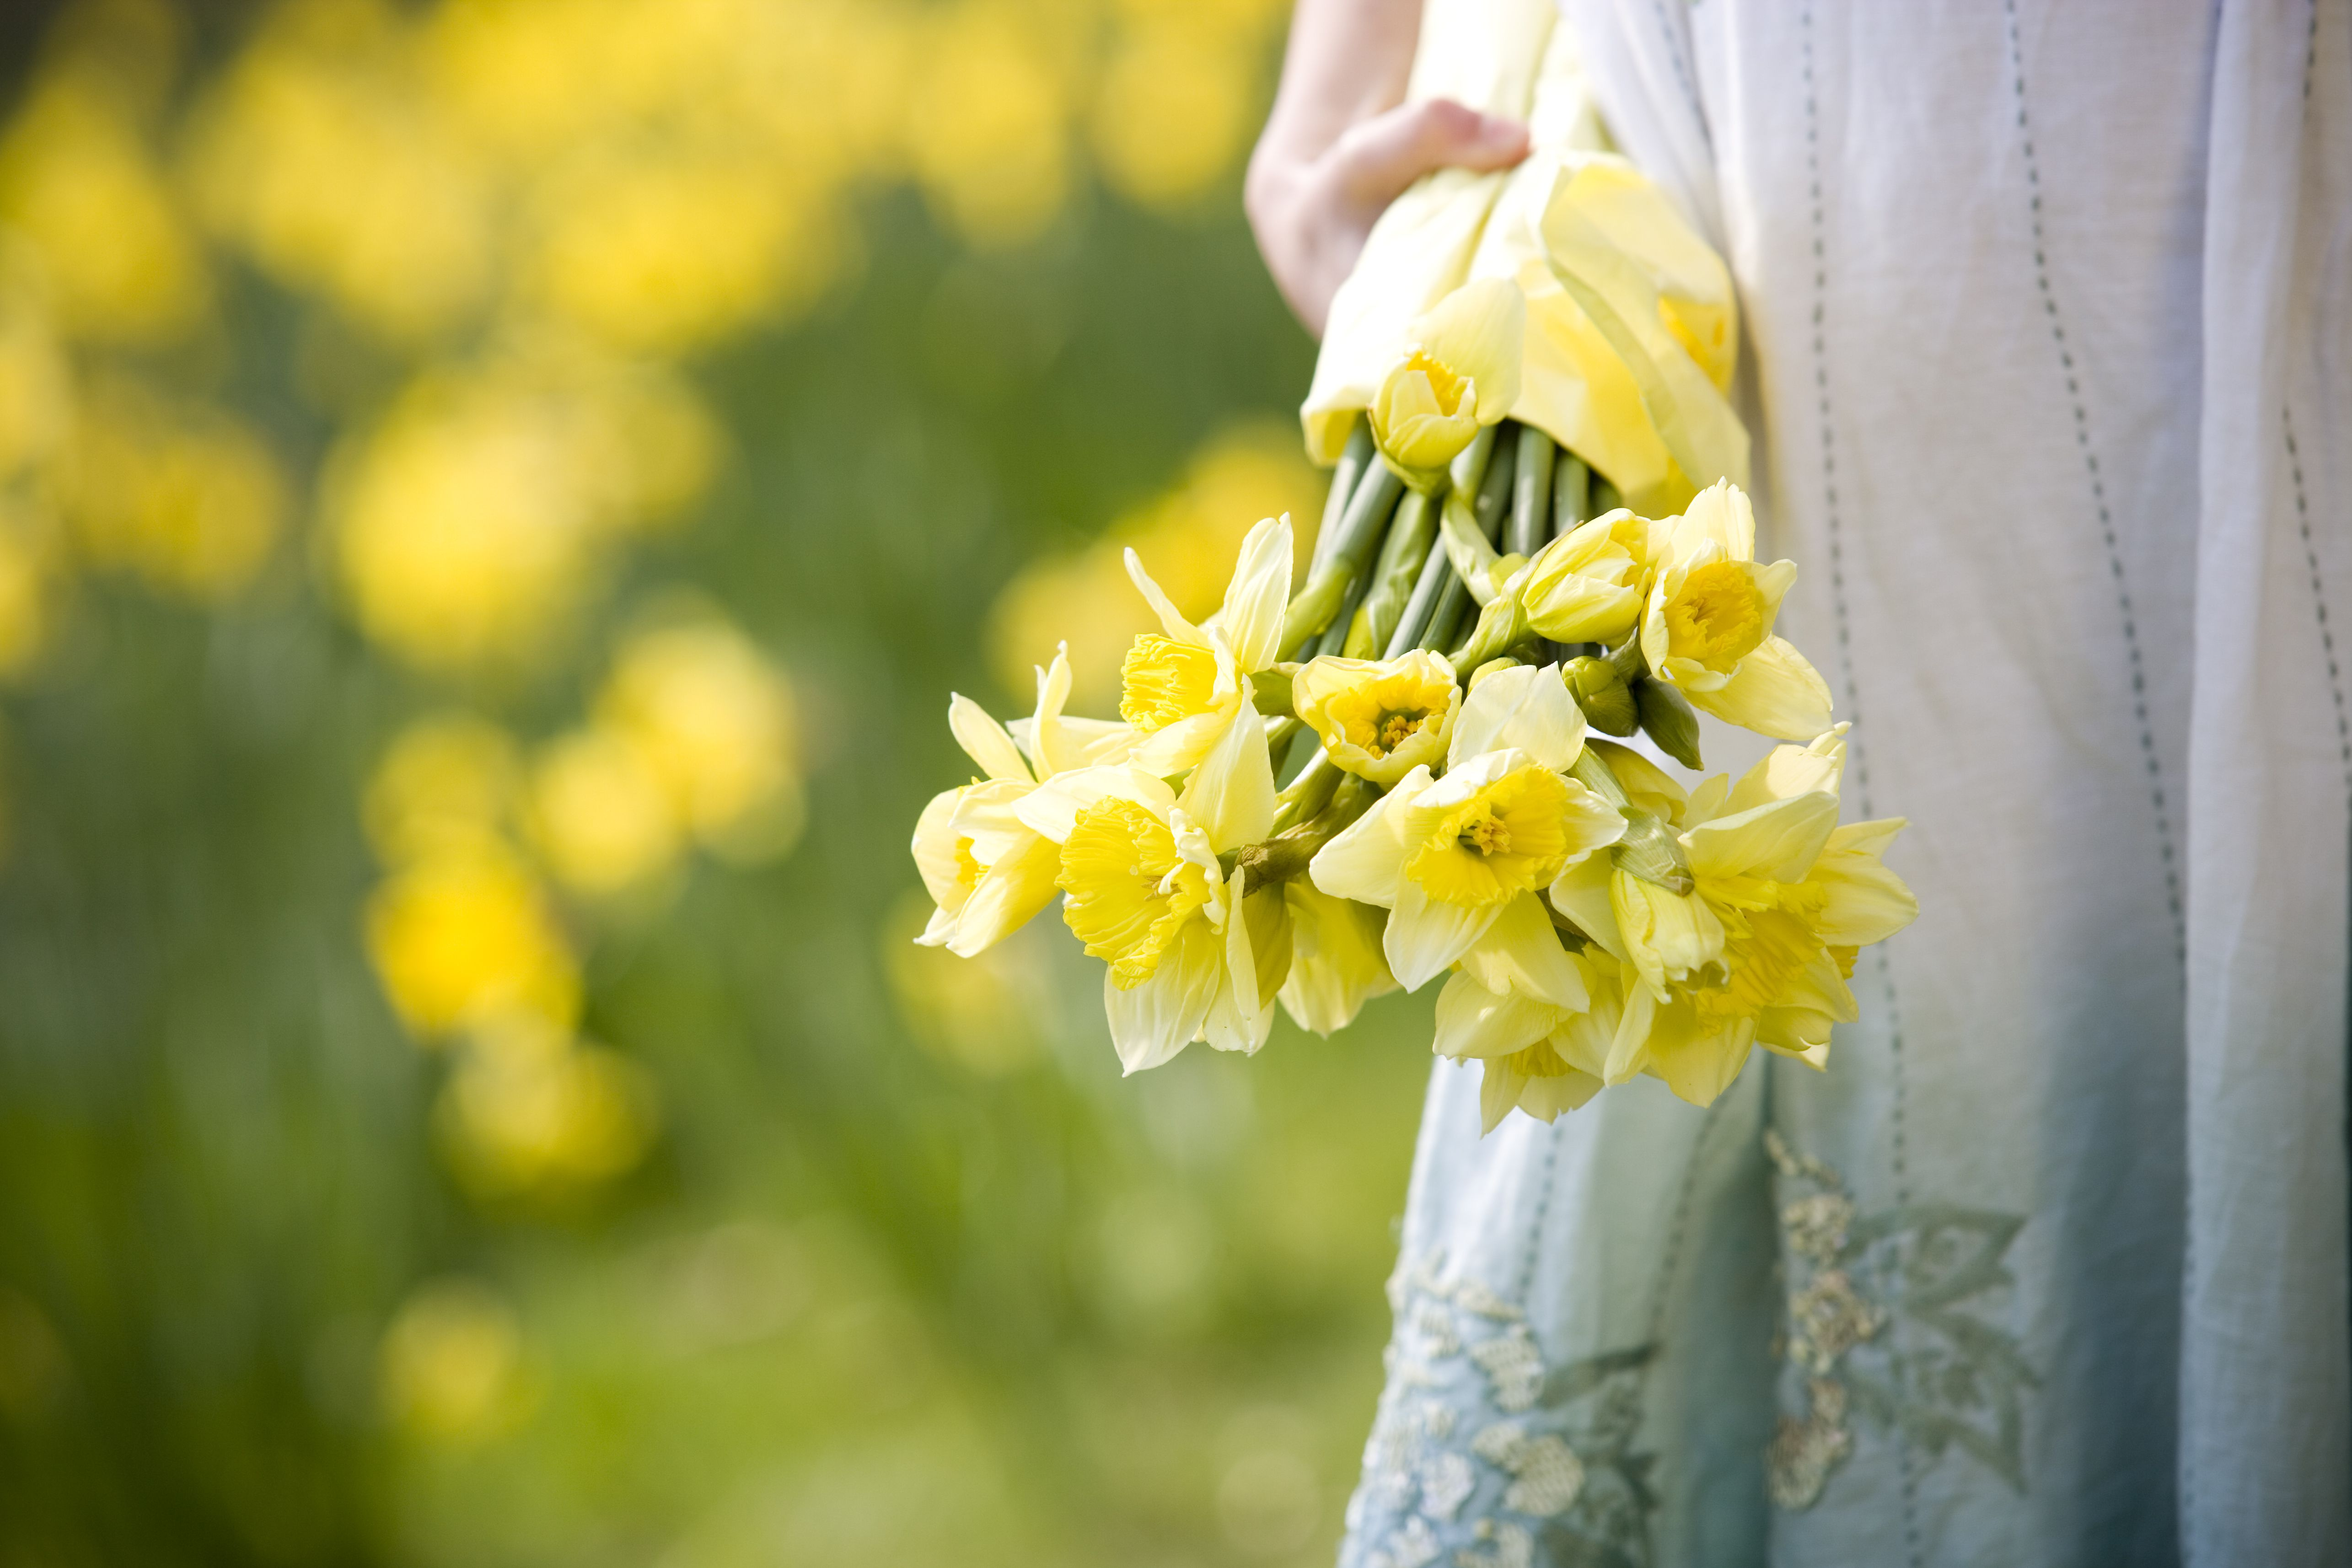 A young girl holding a bunch of daffodils